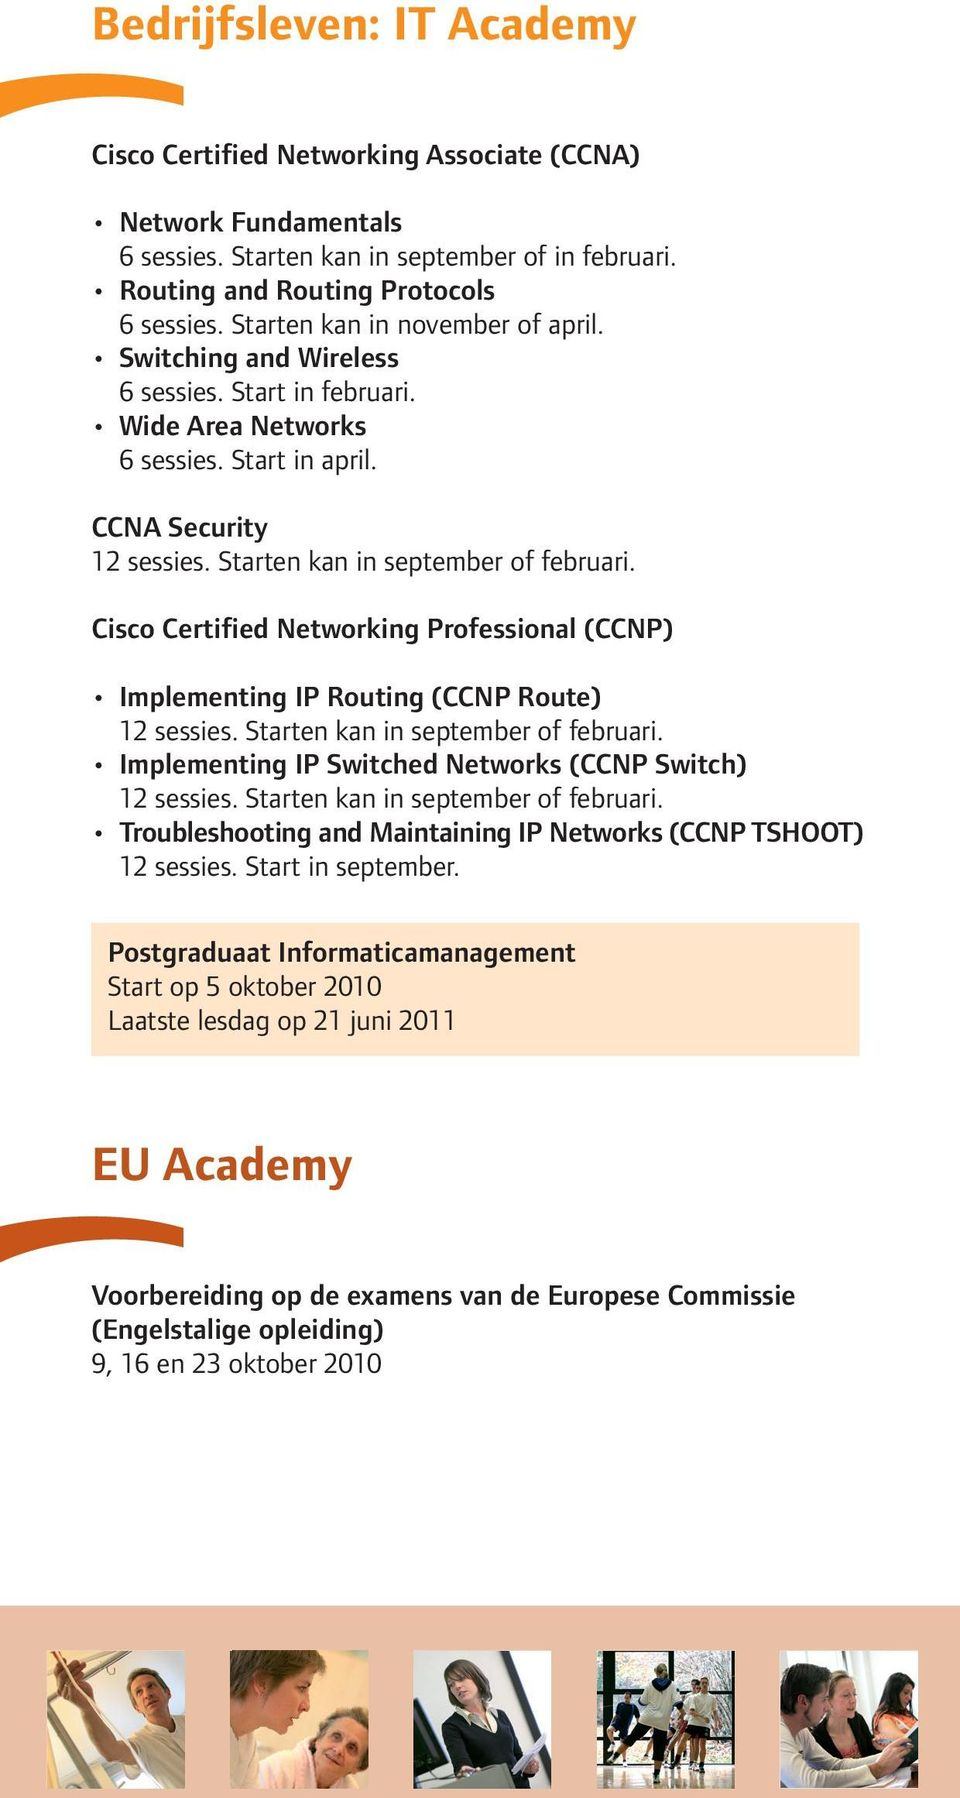 Cisco Certified Networking Professional (CCNP) Implementing IP Routing (CCNP Route) 12 sessies. Starten kan in september of februari. Implementing IP Switched Networks (CCNP Switch) 12 sessies.